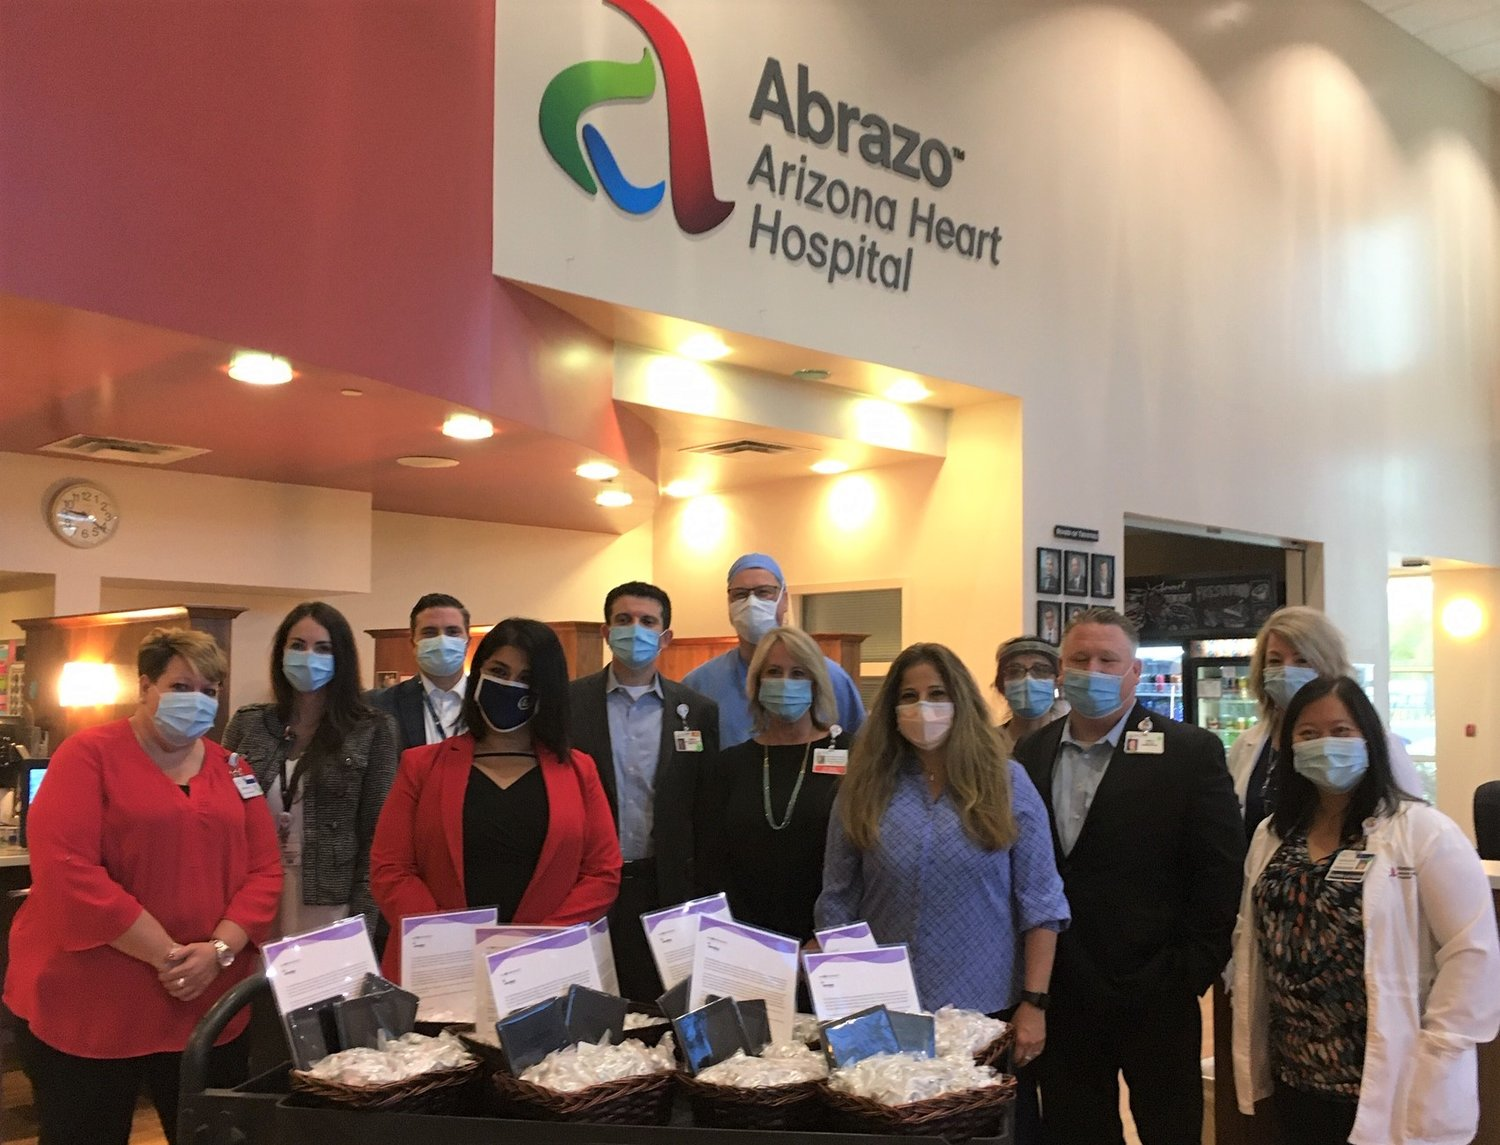 Abrazo hospitals get help with stress   Your Valley